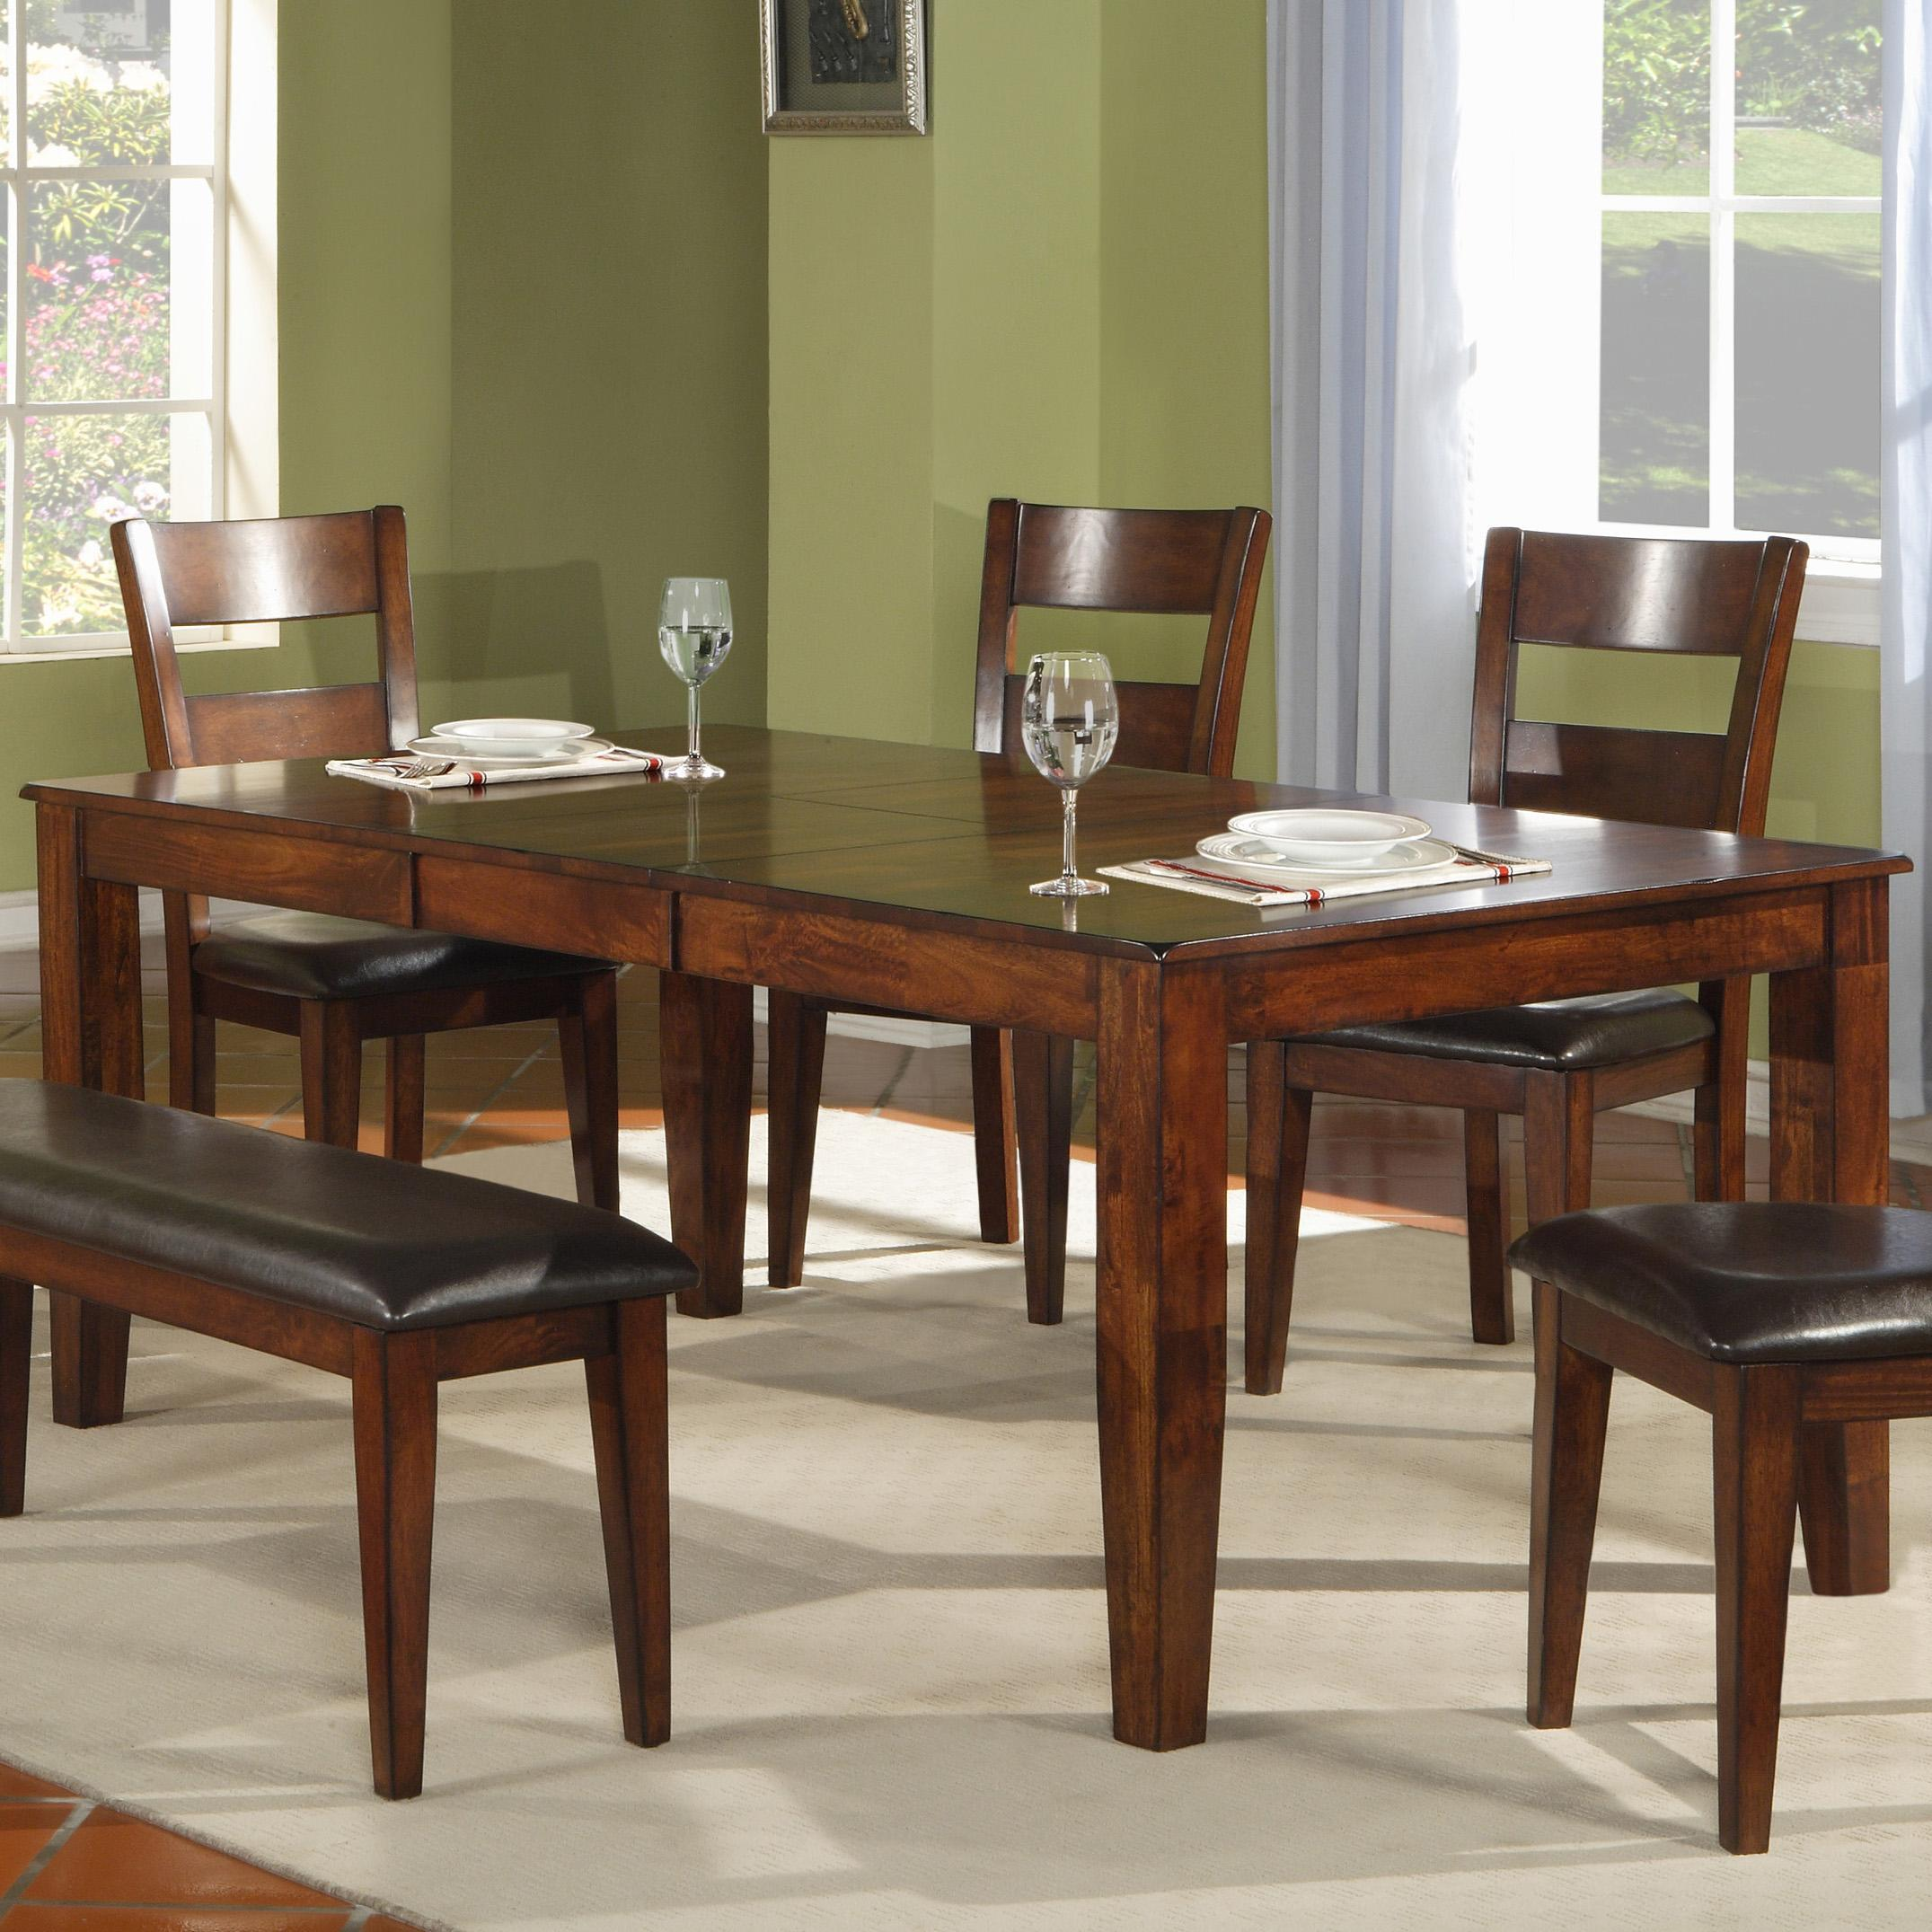 Melbourne Melbourne Dining Table by Holland House at Morris Home